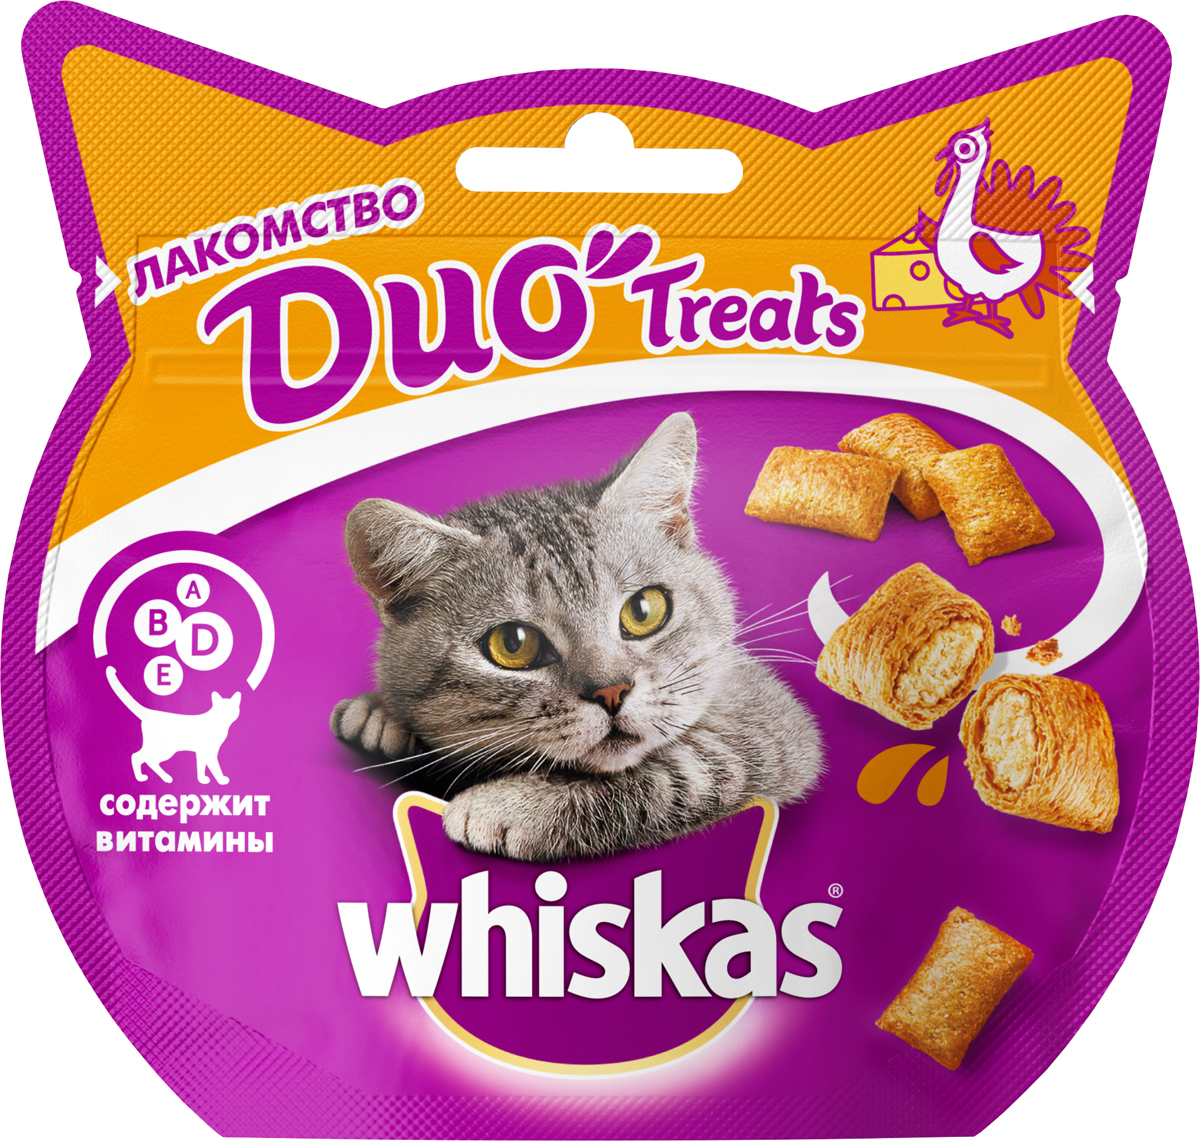 Лакомство для кошек Whiskas Du- Treats, c индейкой и сыром, 40 г whiskas temptations hearty beef flavour treats for cats